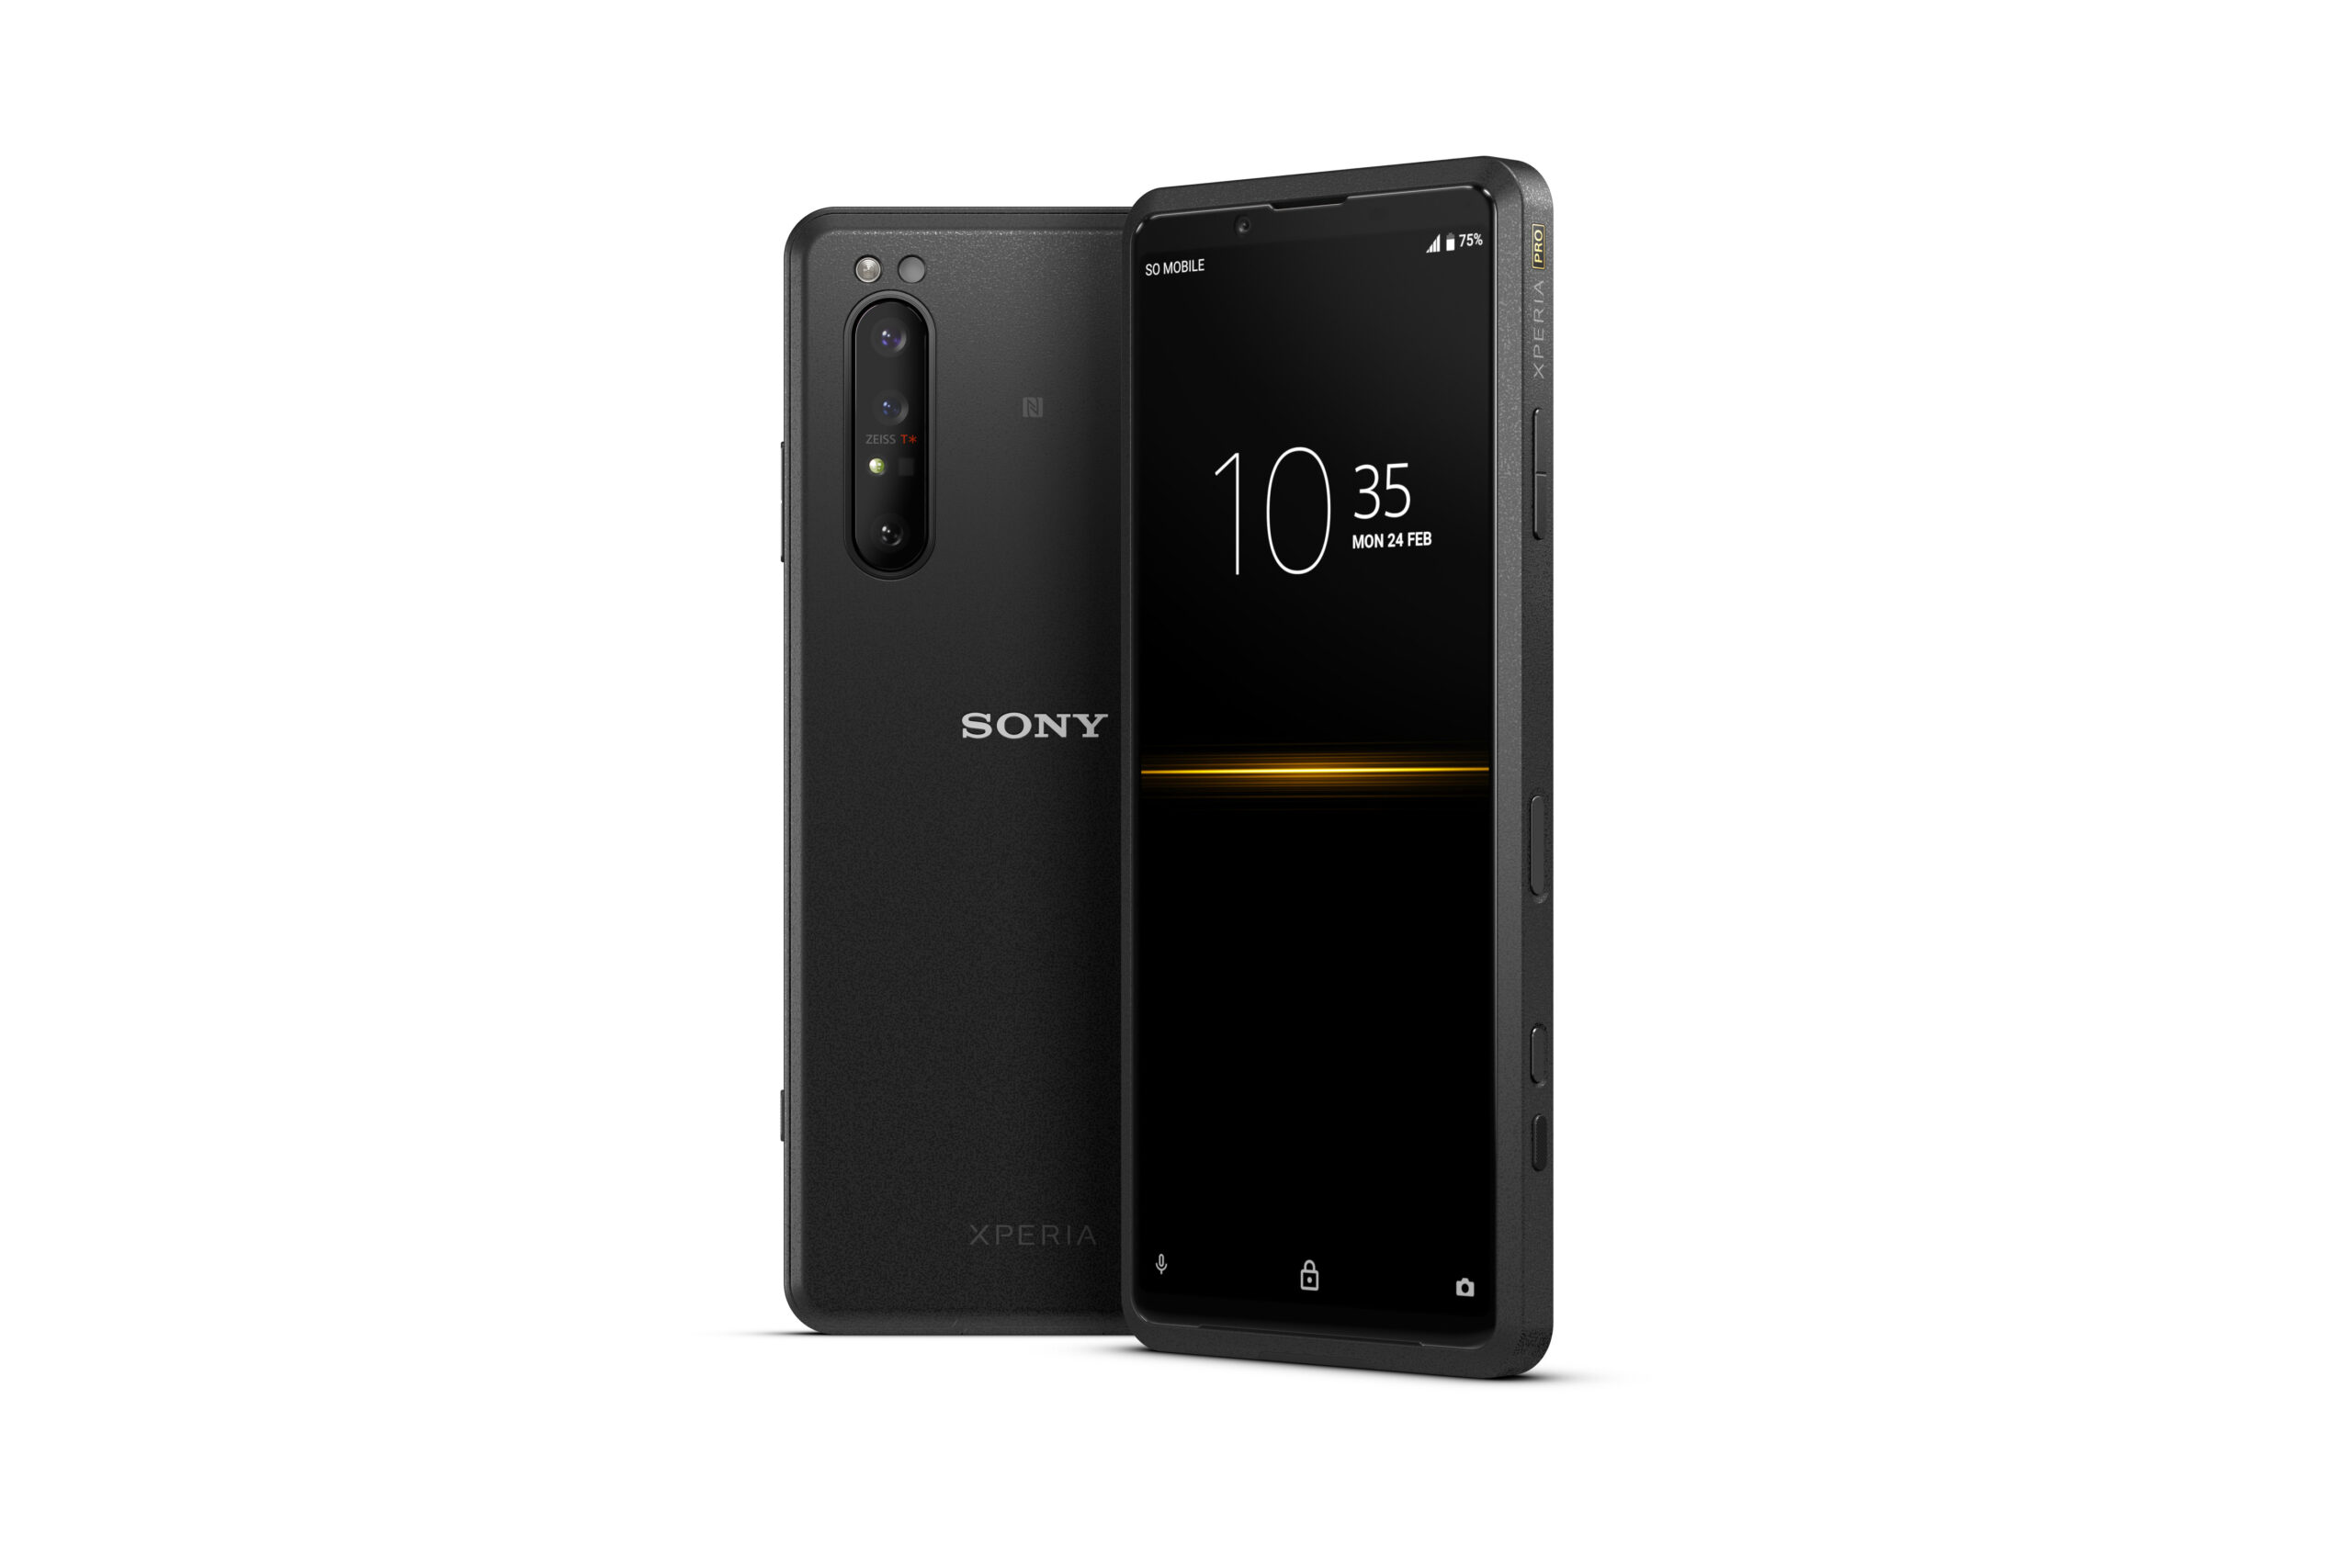 Sforum - Latest technology information page 01_Xperia_Pro_group_black_withclock_Large-scaled Xperia Pro officially on shelves: Price 2500 USD, for professional videographers